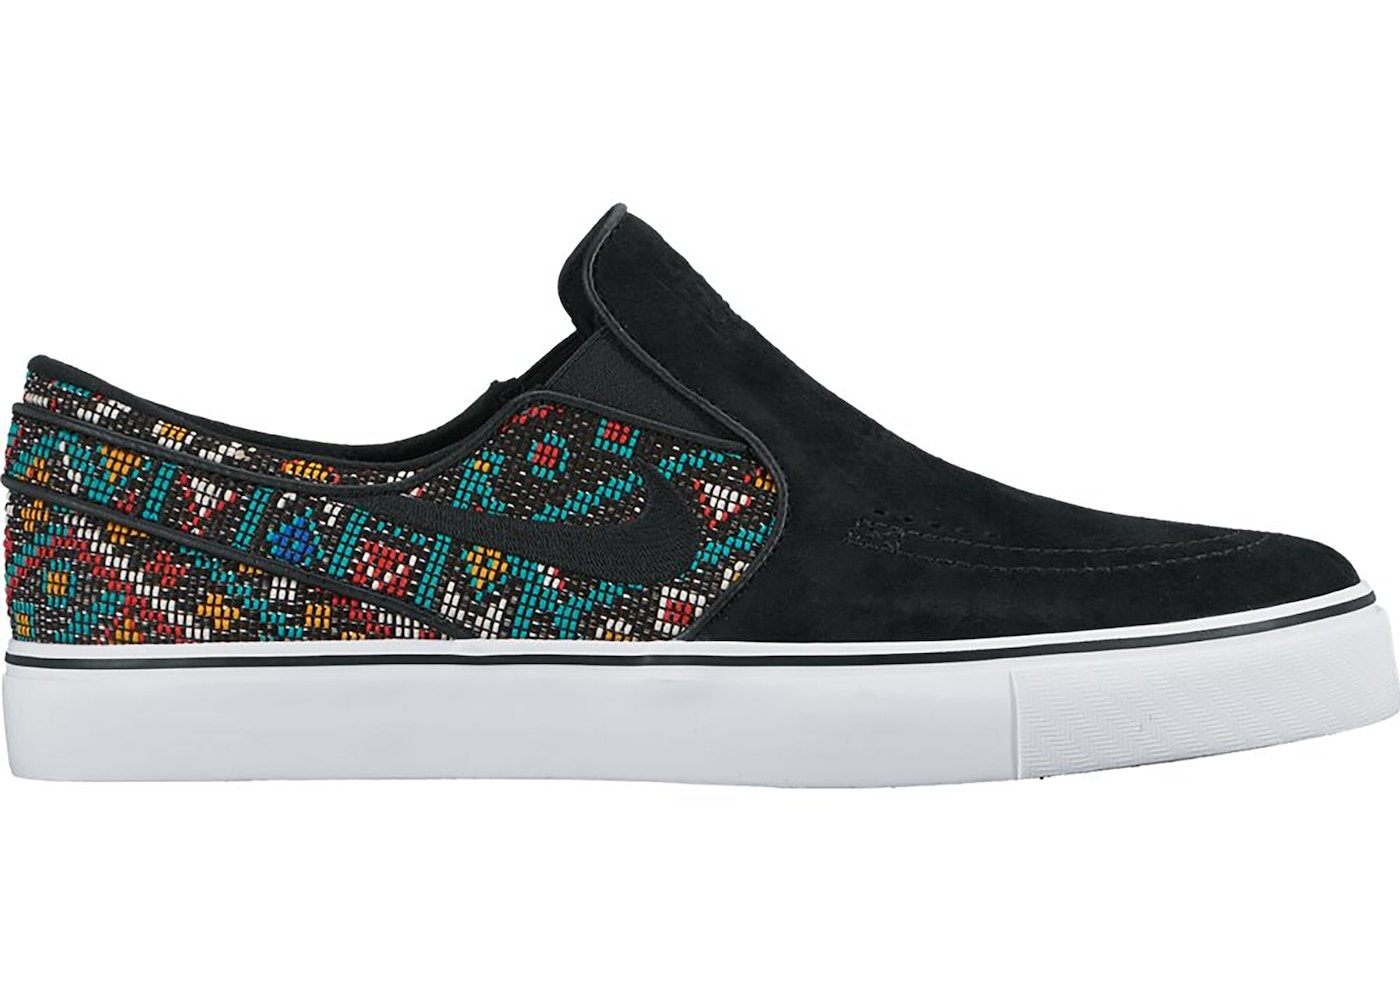 aniversario Ingenioso Absoluto  Nike SB Zoom Stefan Janoski Slip-On Elite Aztec - 844808-002